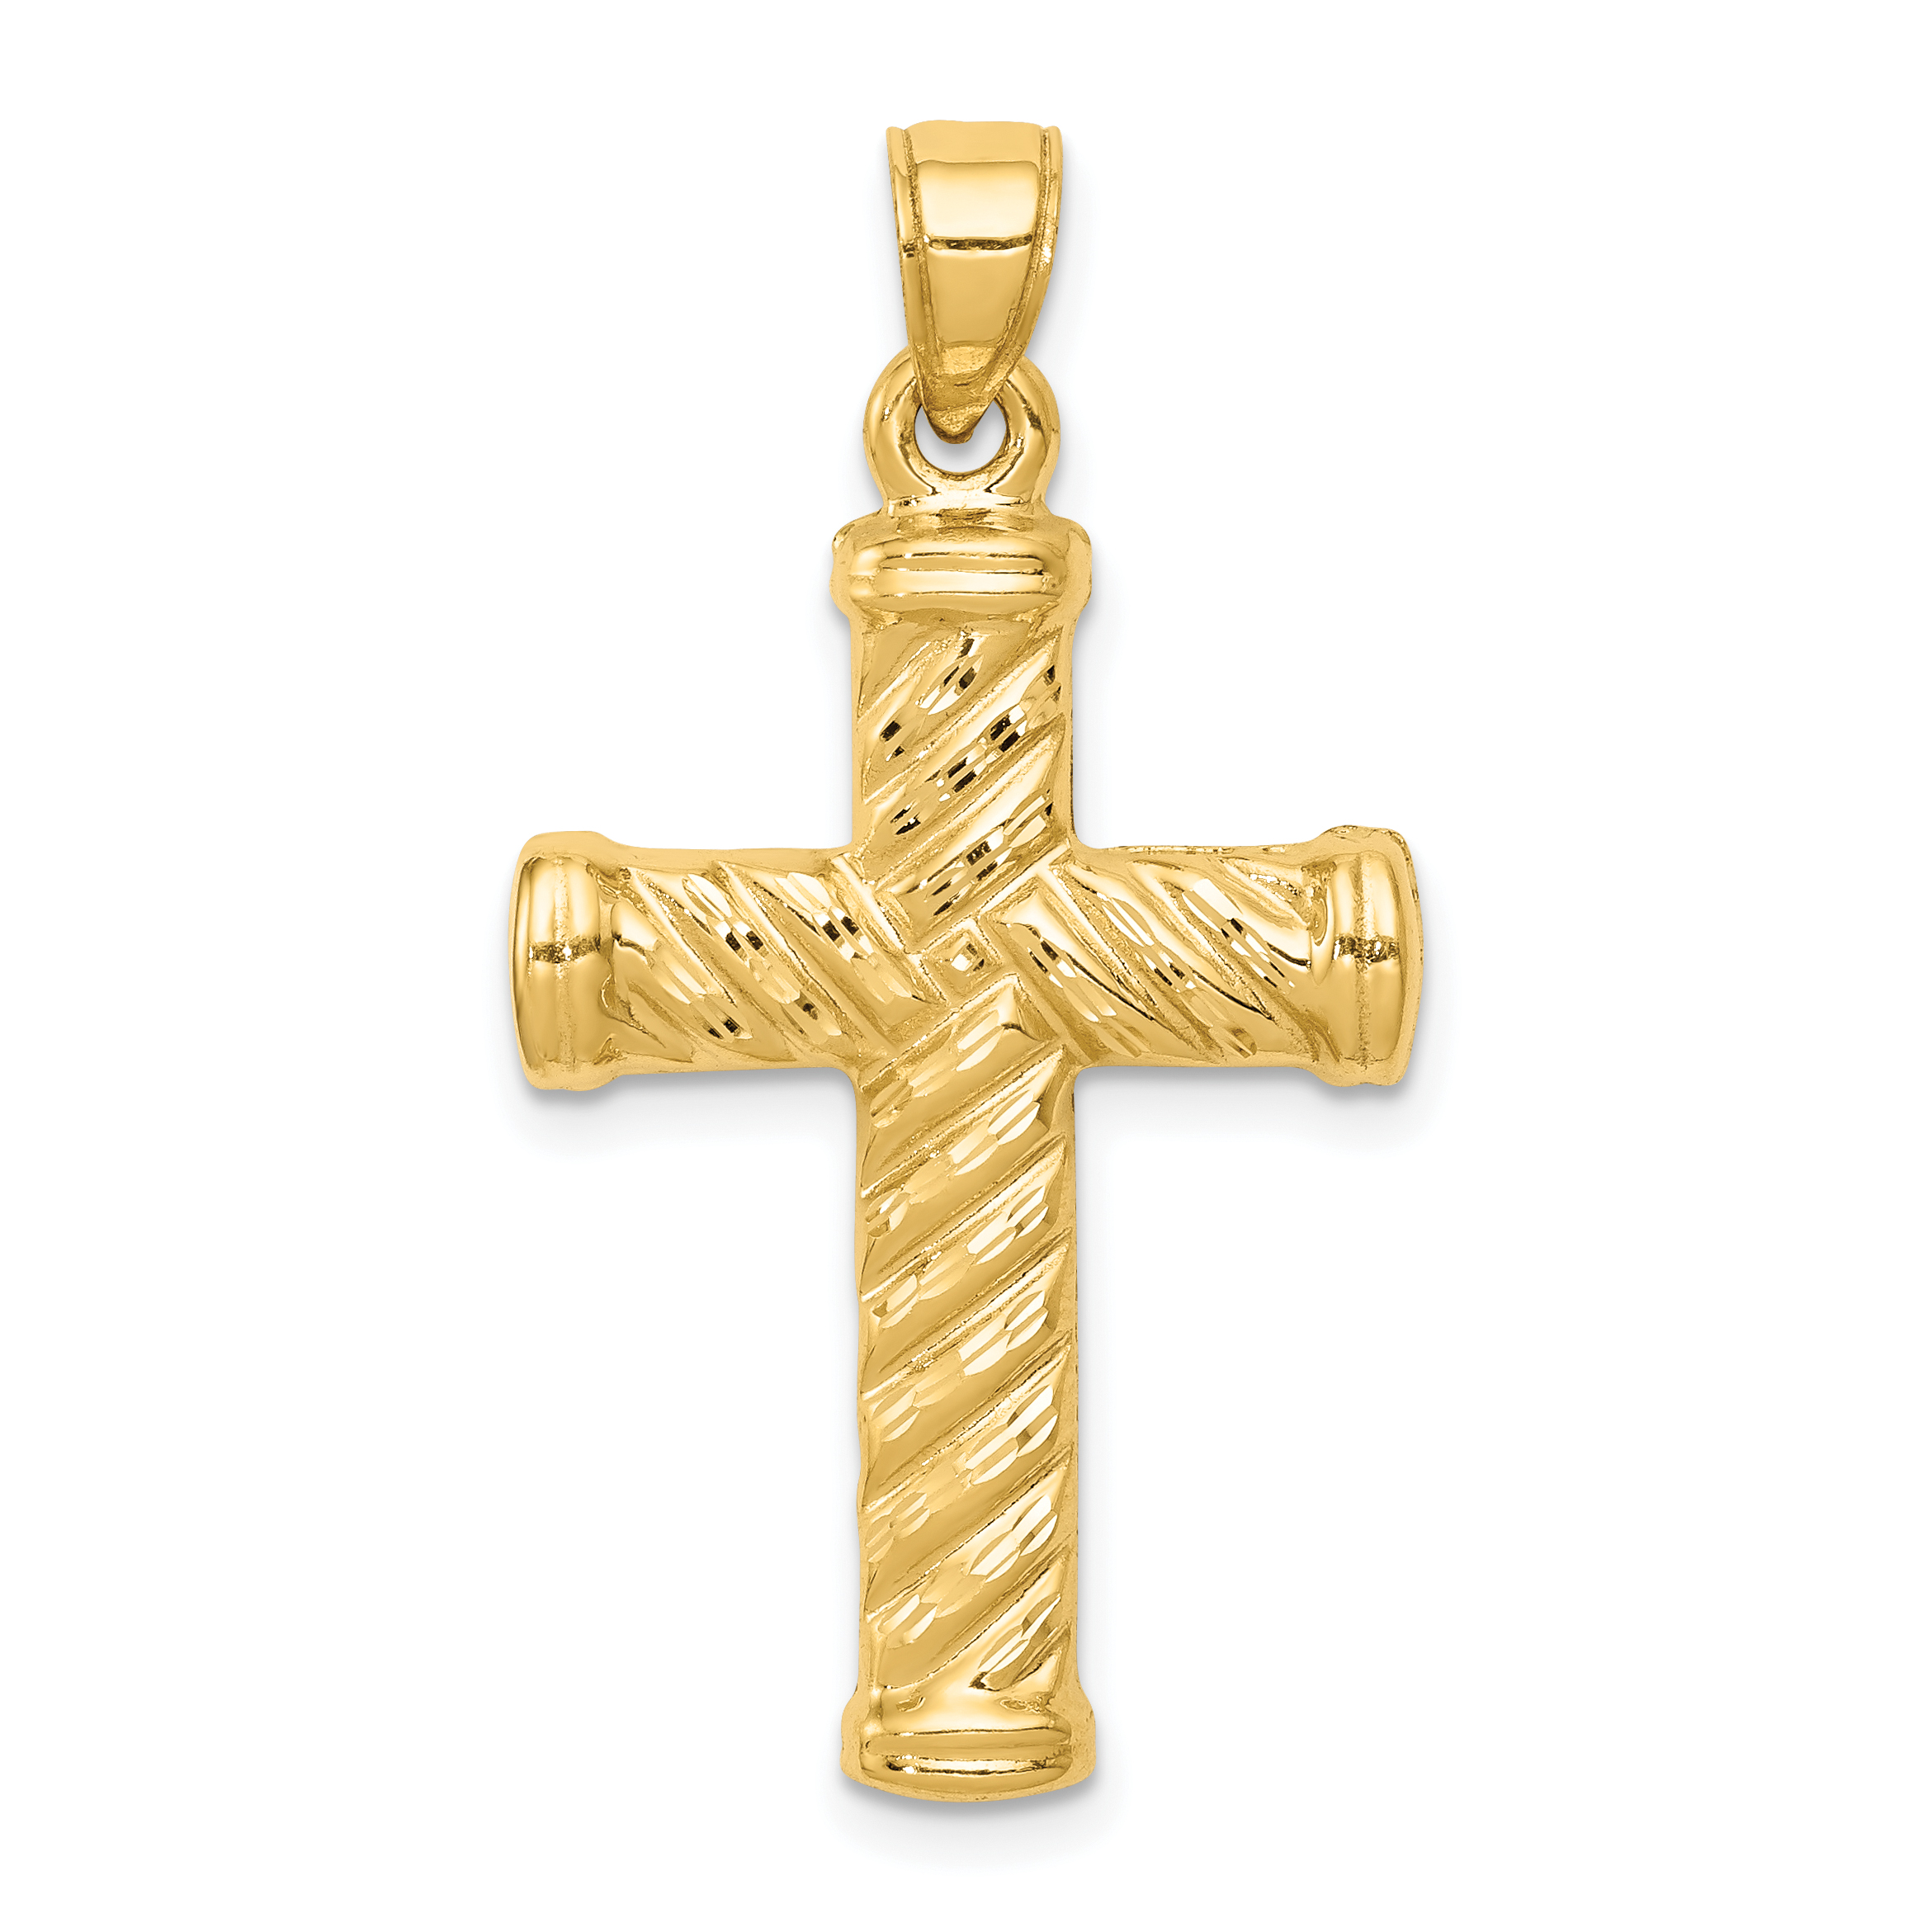 14k Yellow Gold Reversible Cross Religious Pendant Charm Necklace Latin Fine Jewelry Gifts For Women For Her - image 2 of 2